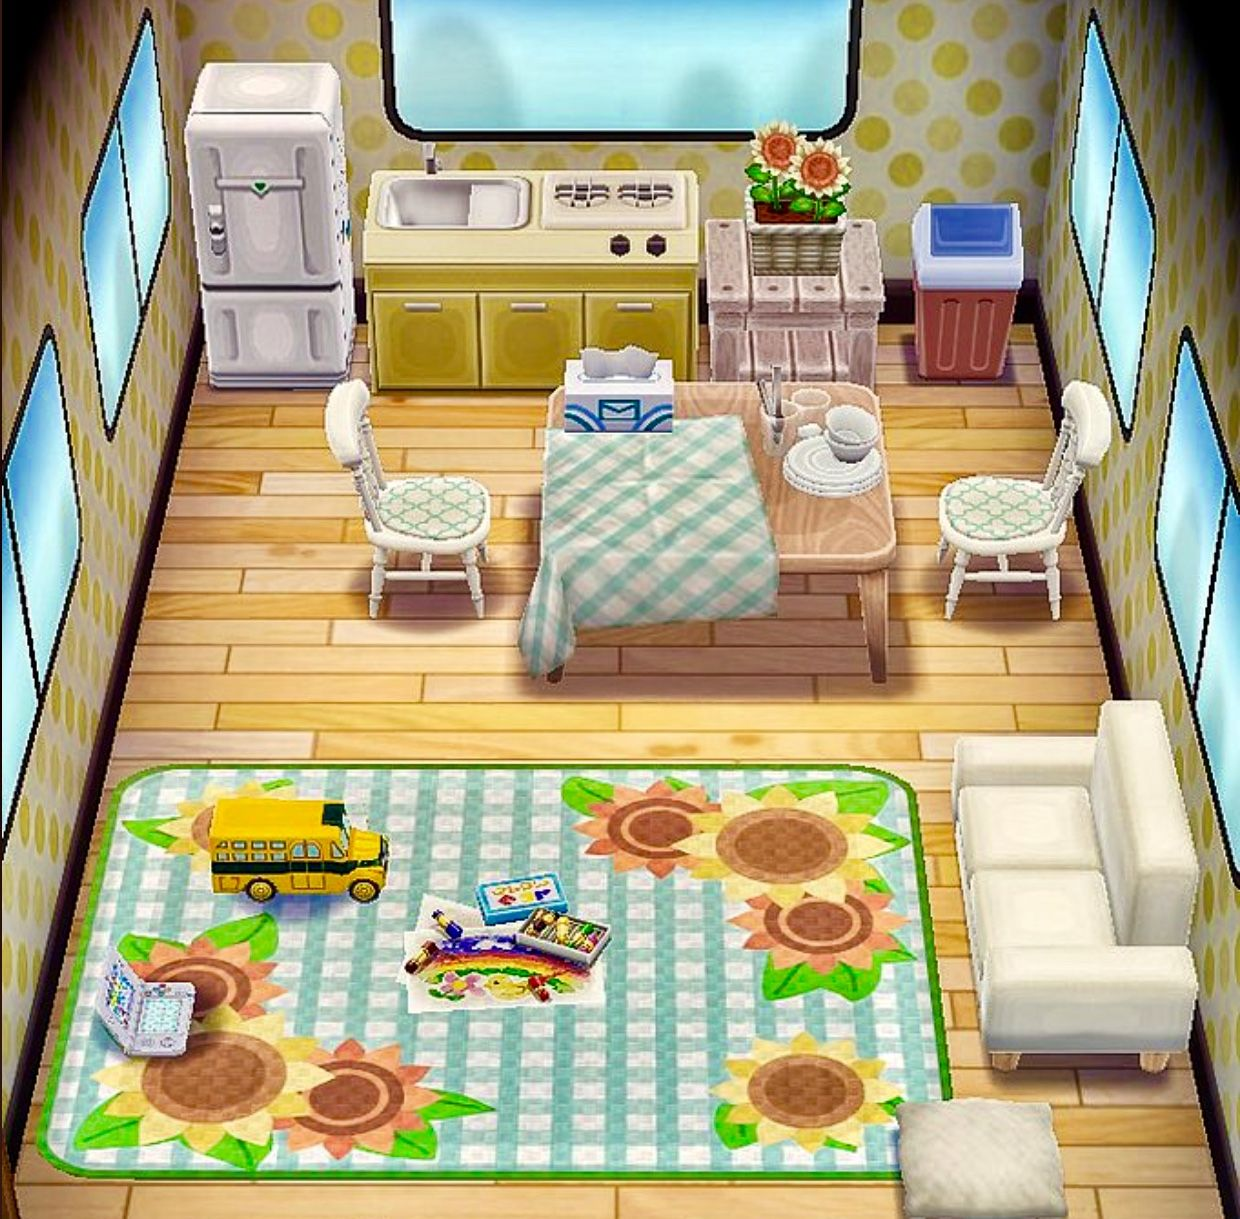 Pin By Rochelle Lao On I 3 Animal Crossing With Images